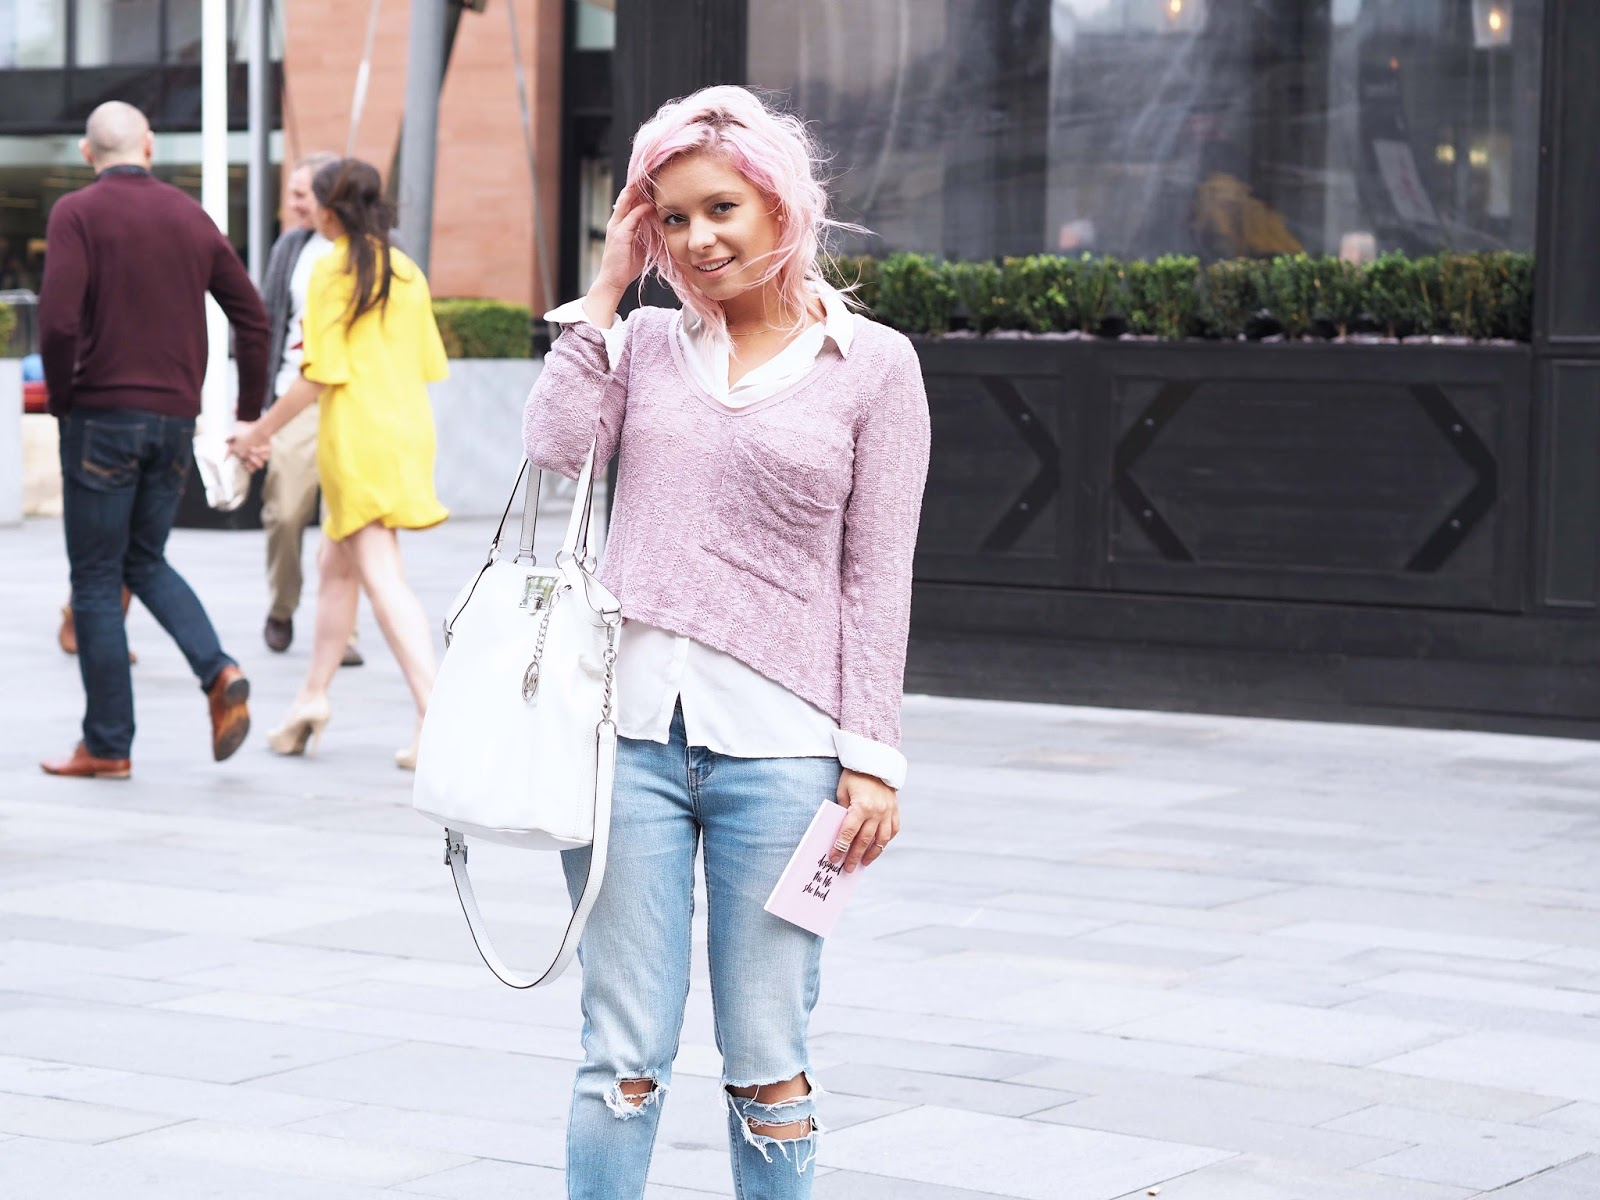 Pinks Hair Style: Let's Talk Fashion With Pink Hair!